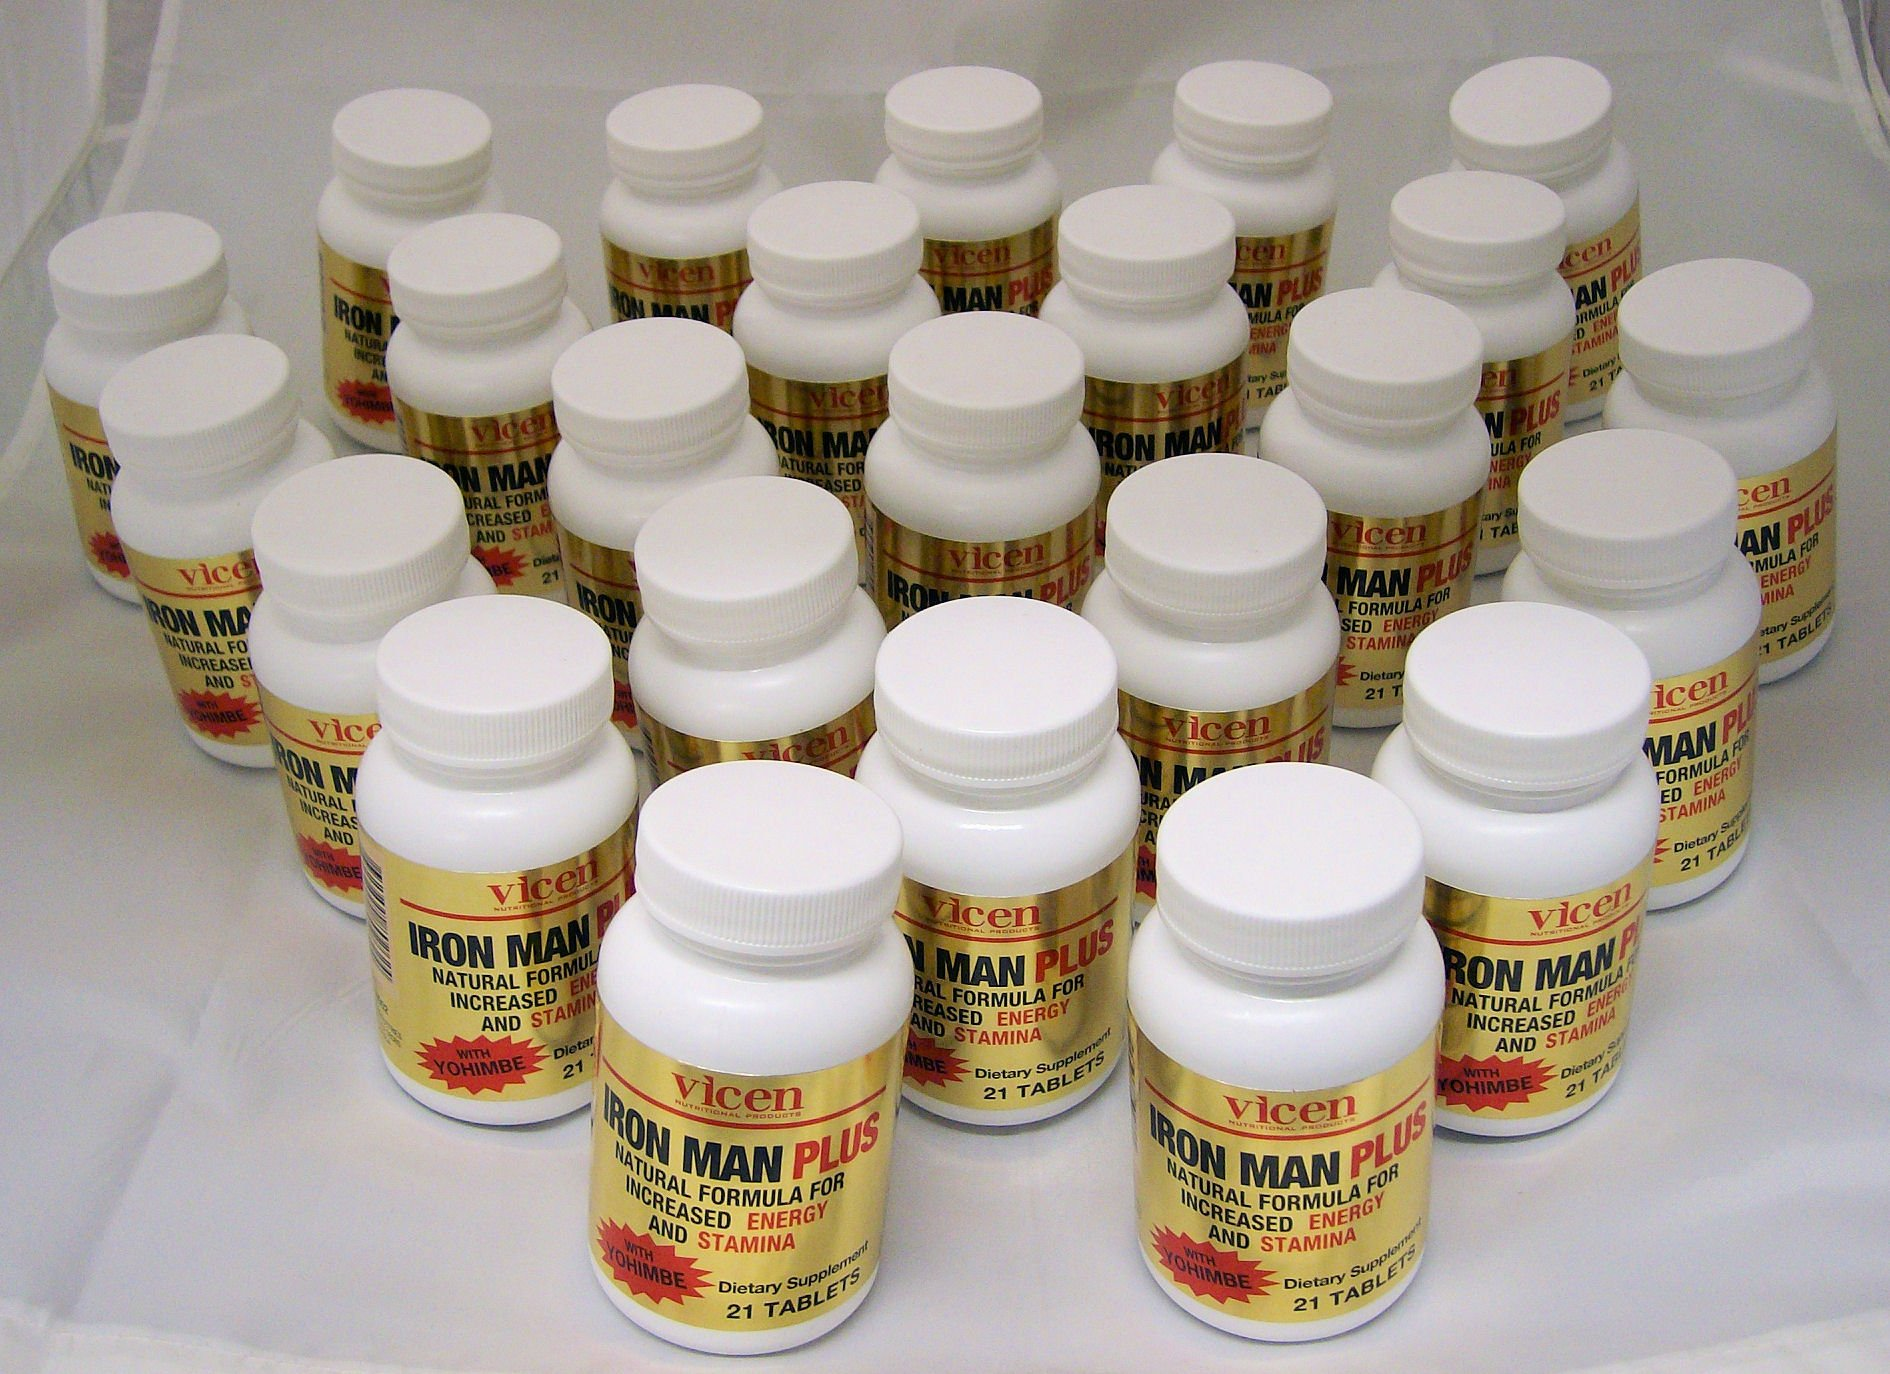 Vicen Case of 24 Bottles Iron Man Plus Male Stamina & Energy Enhancement WithYohimbe